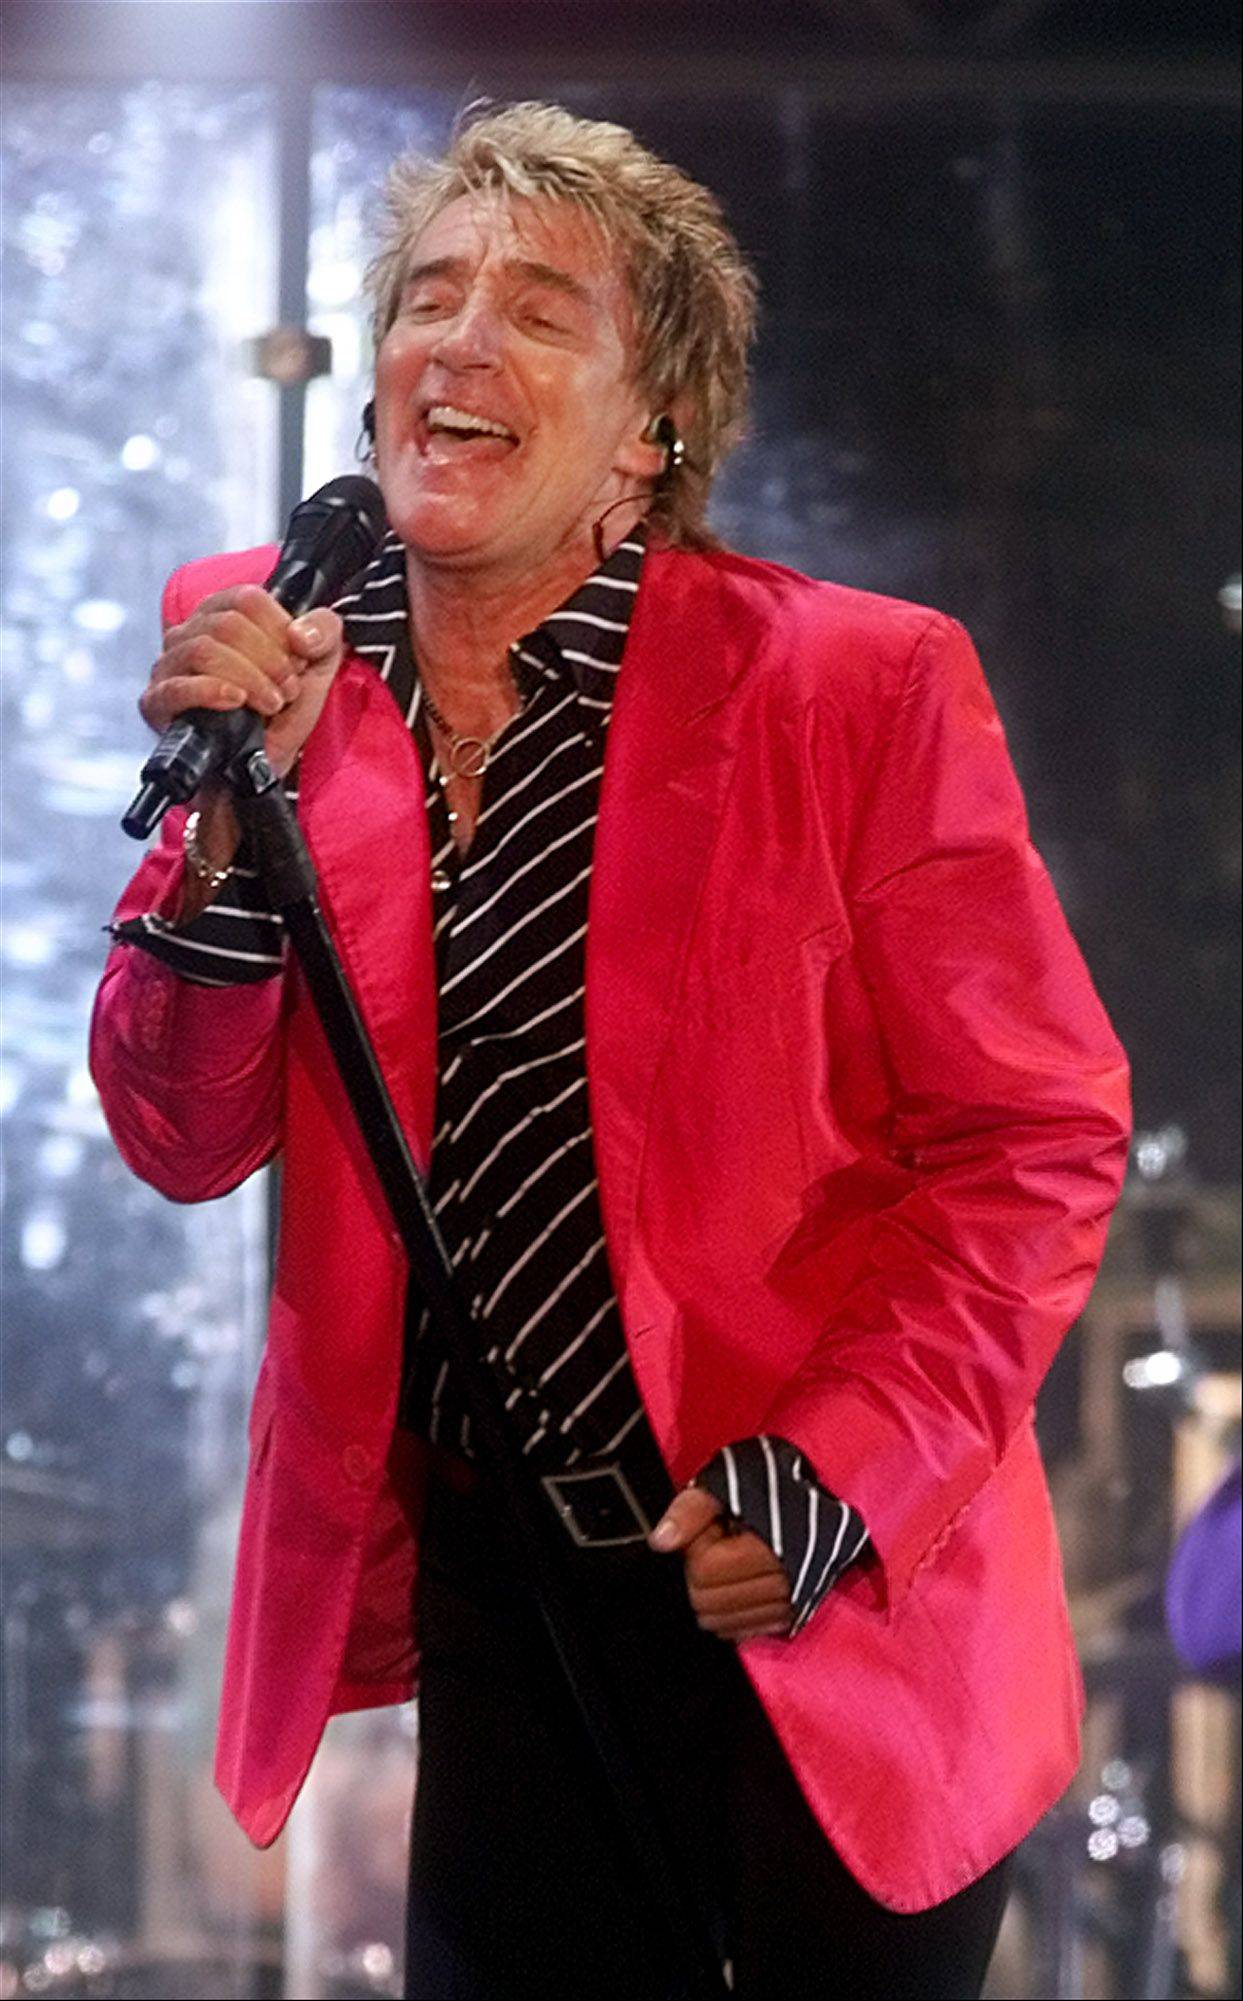 File photo Rod Stewart, the subject of music industry derision for decades, was greeted with predictable guffaws when he released �Merry Christmas, Baby.� Festive albums are usually about as sophisticated as party hats and mistletoe kisses and this is no exception, but Rod is crying all the way to the bank.